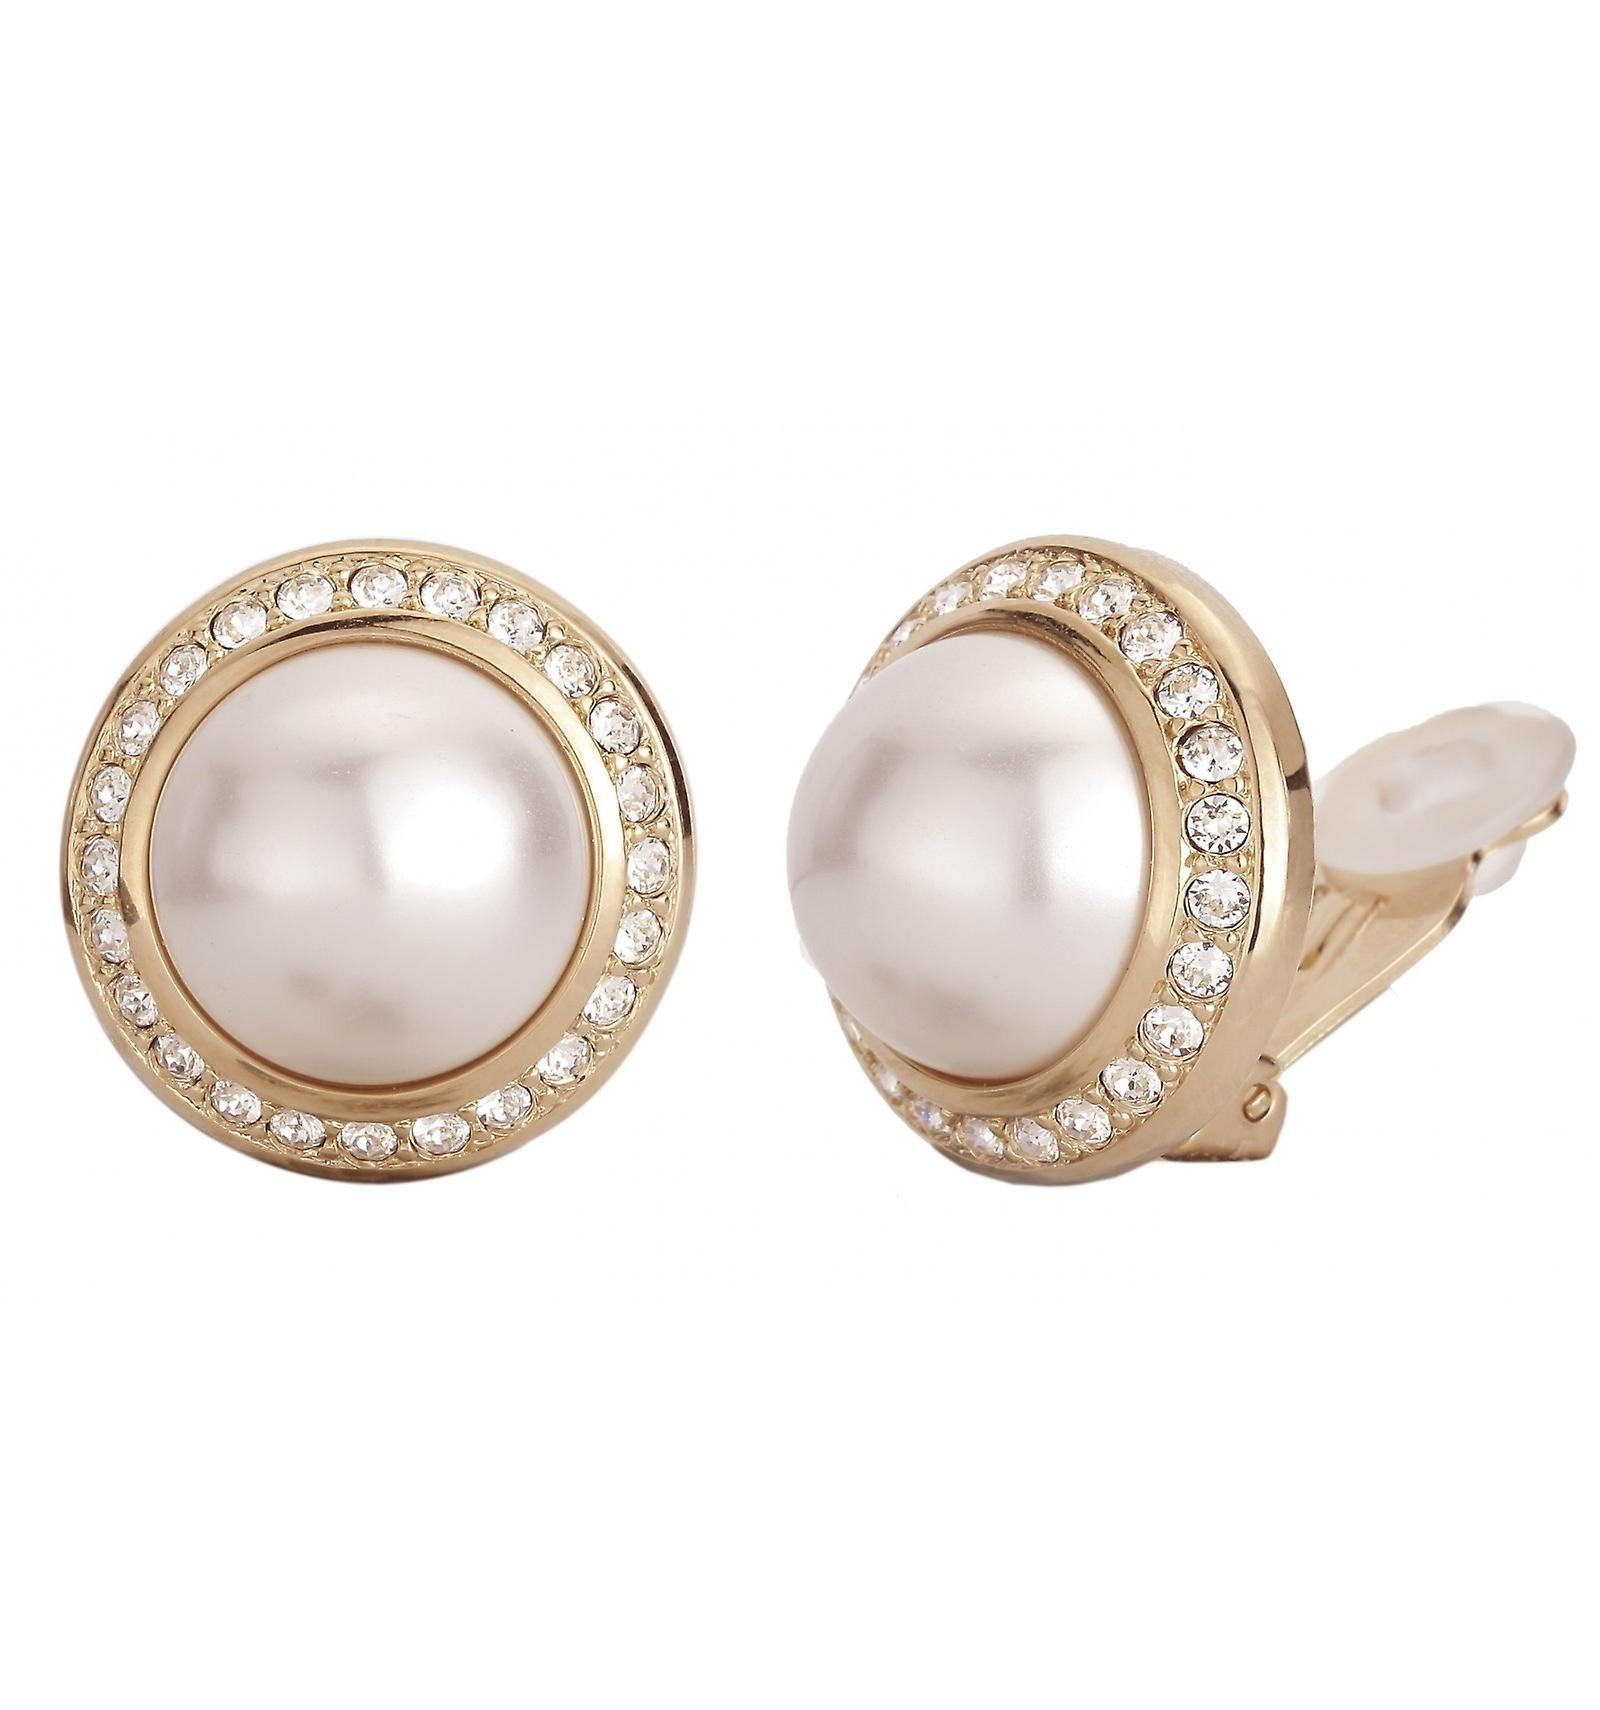 Traveller clip earring - 16mm white pearl - 22ct gold plated - 113259